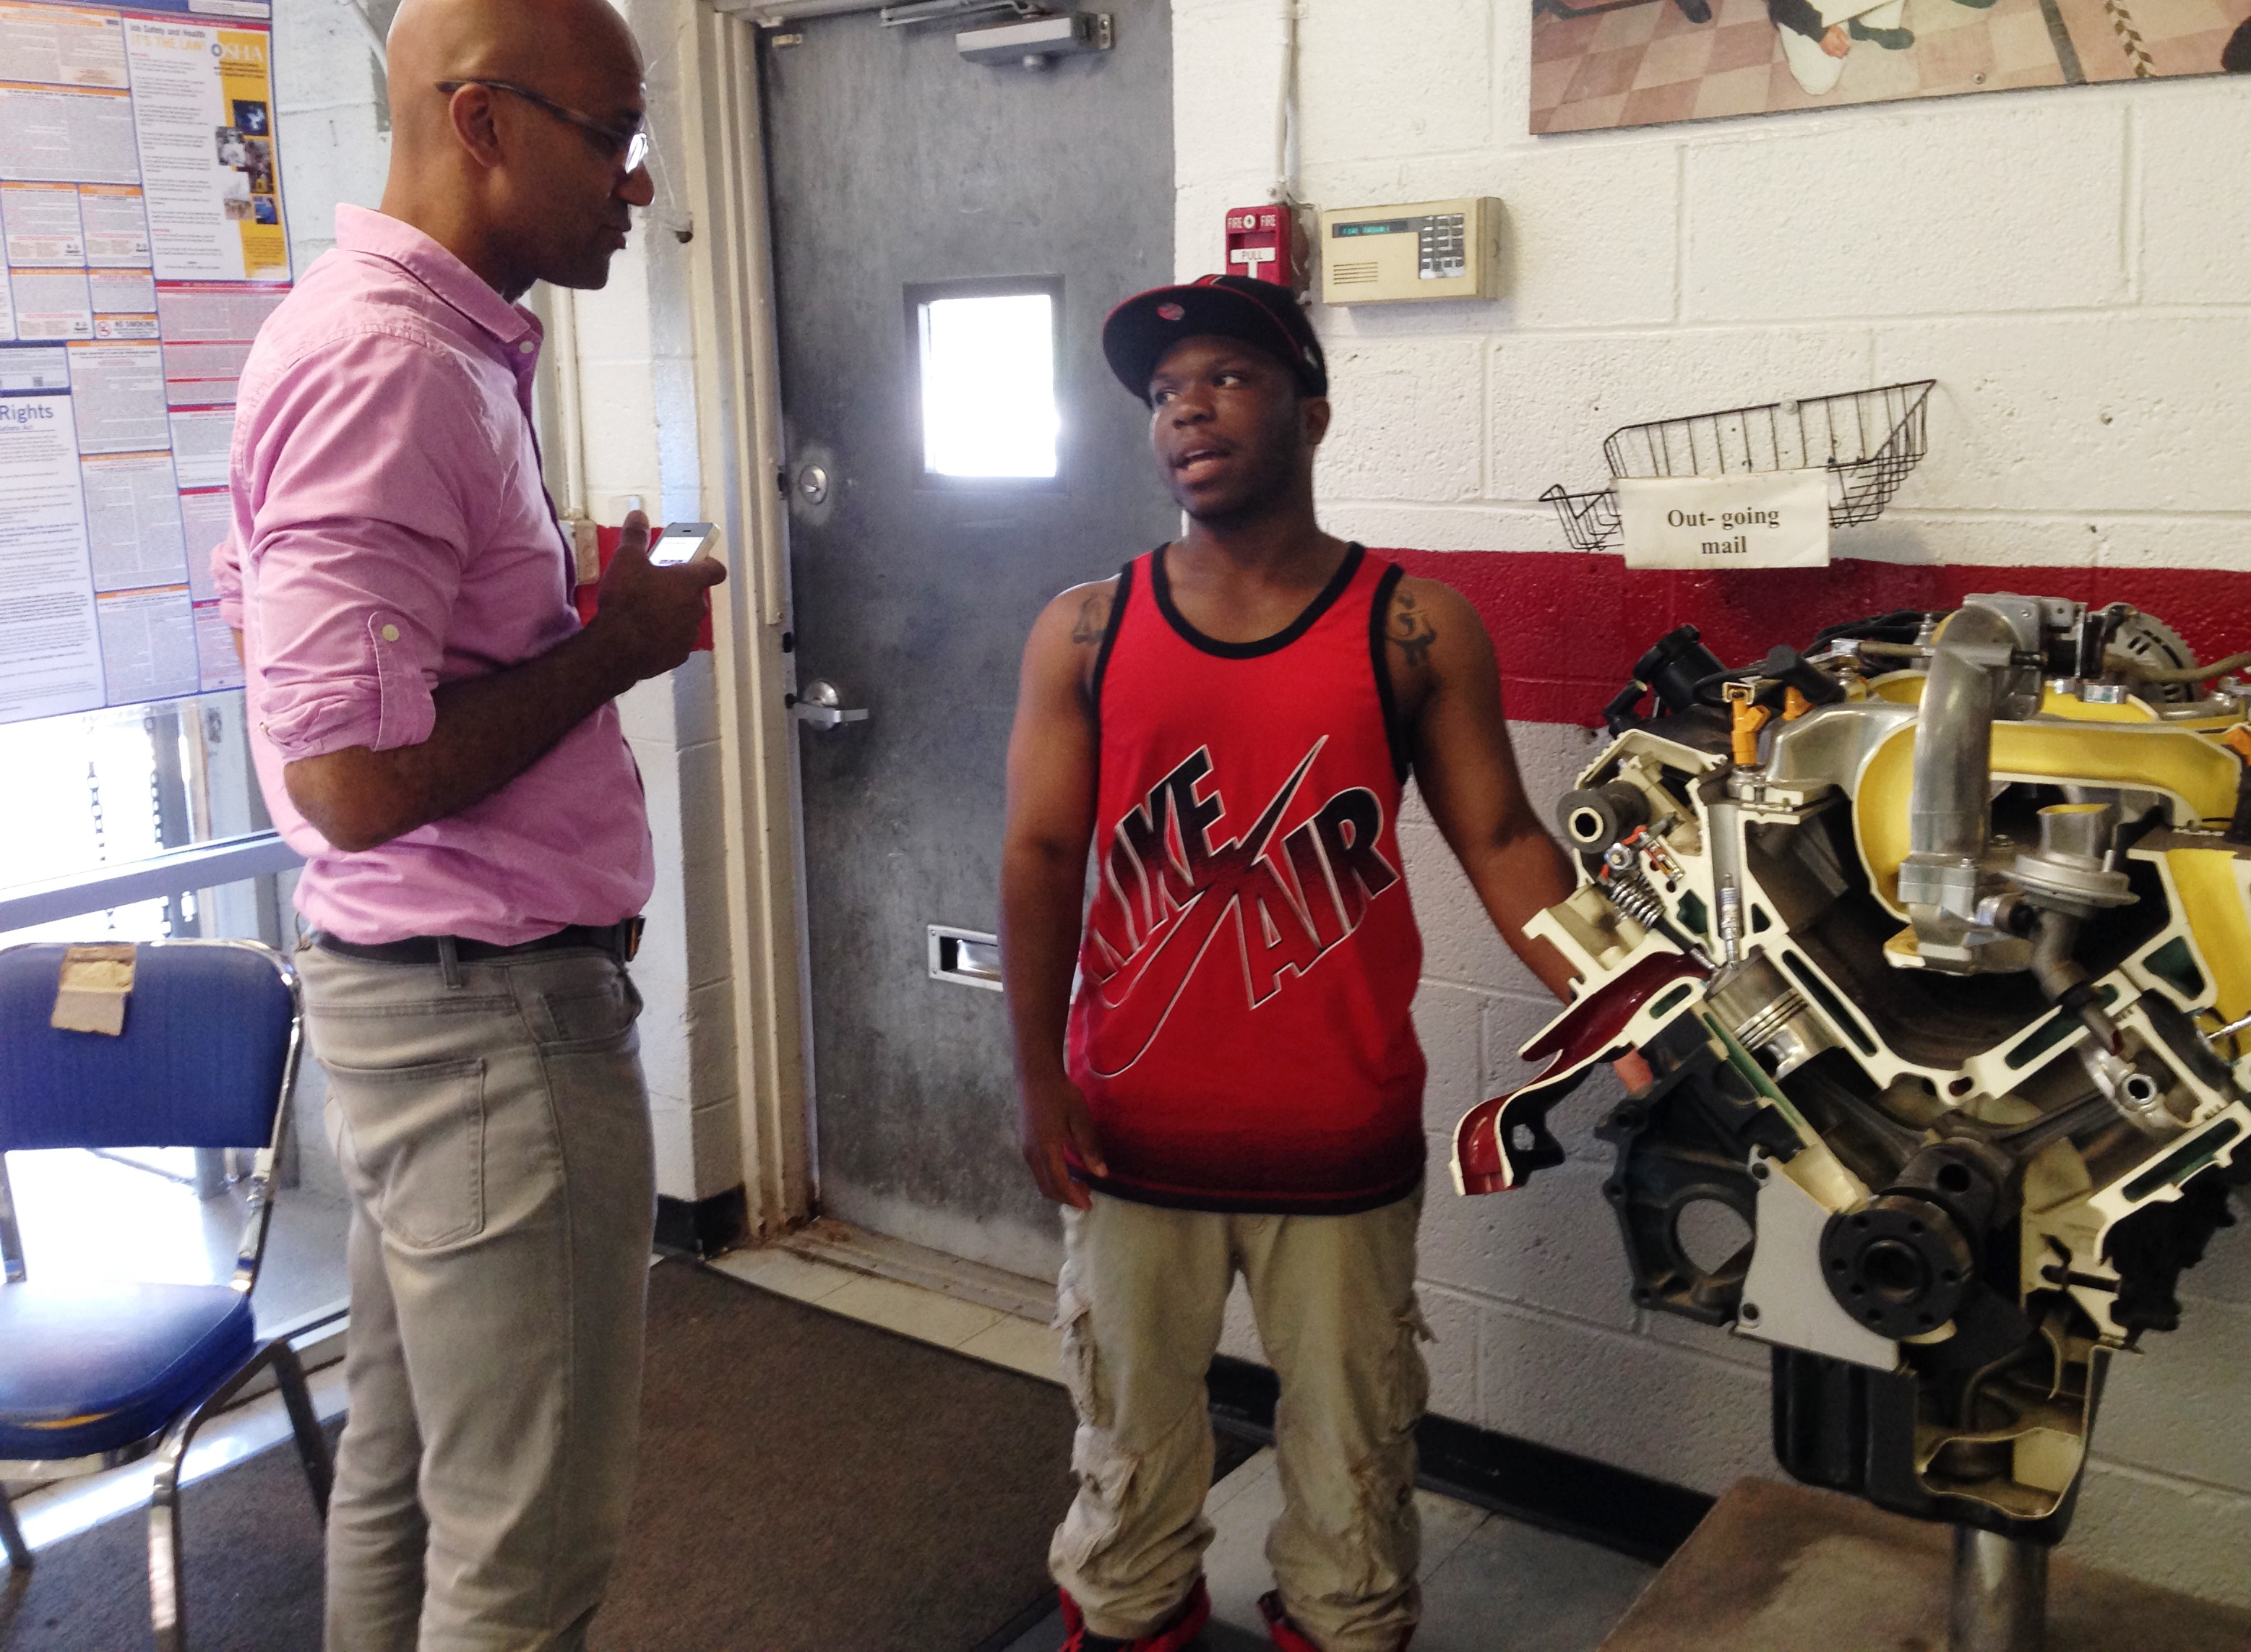 Dorian Moody, right, a recent student of NCC's Automotive Technician Employment and Training Program, speaks with Colorlines reporter Kai Wright, left.